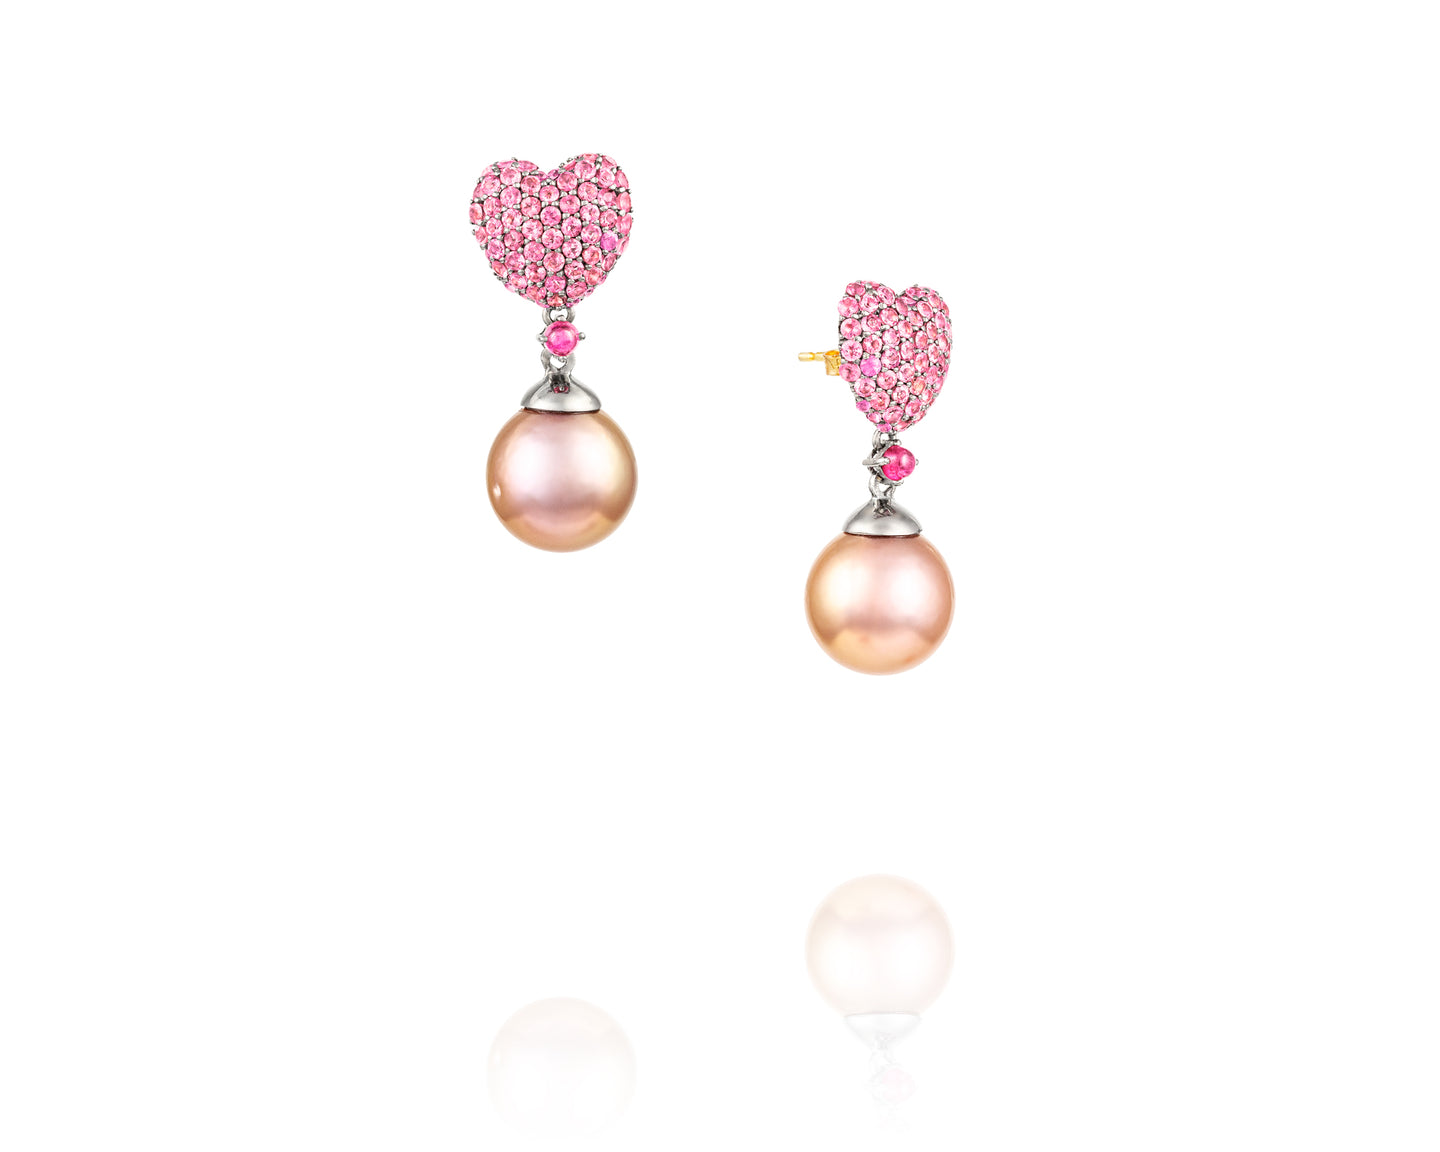 Heart Shaped Sapphire Pearl Earrings